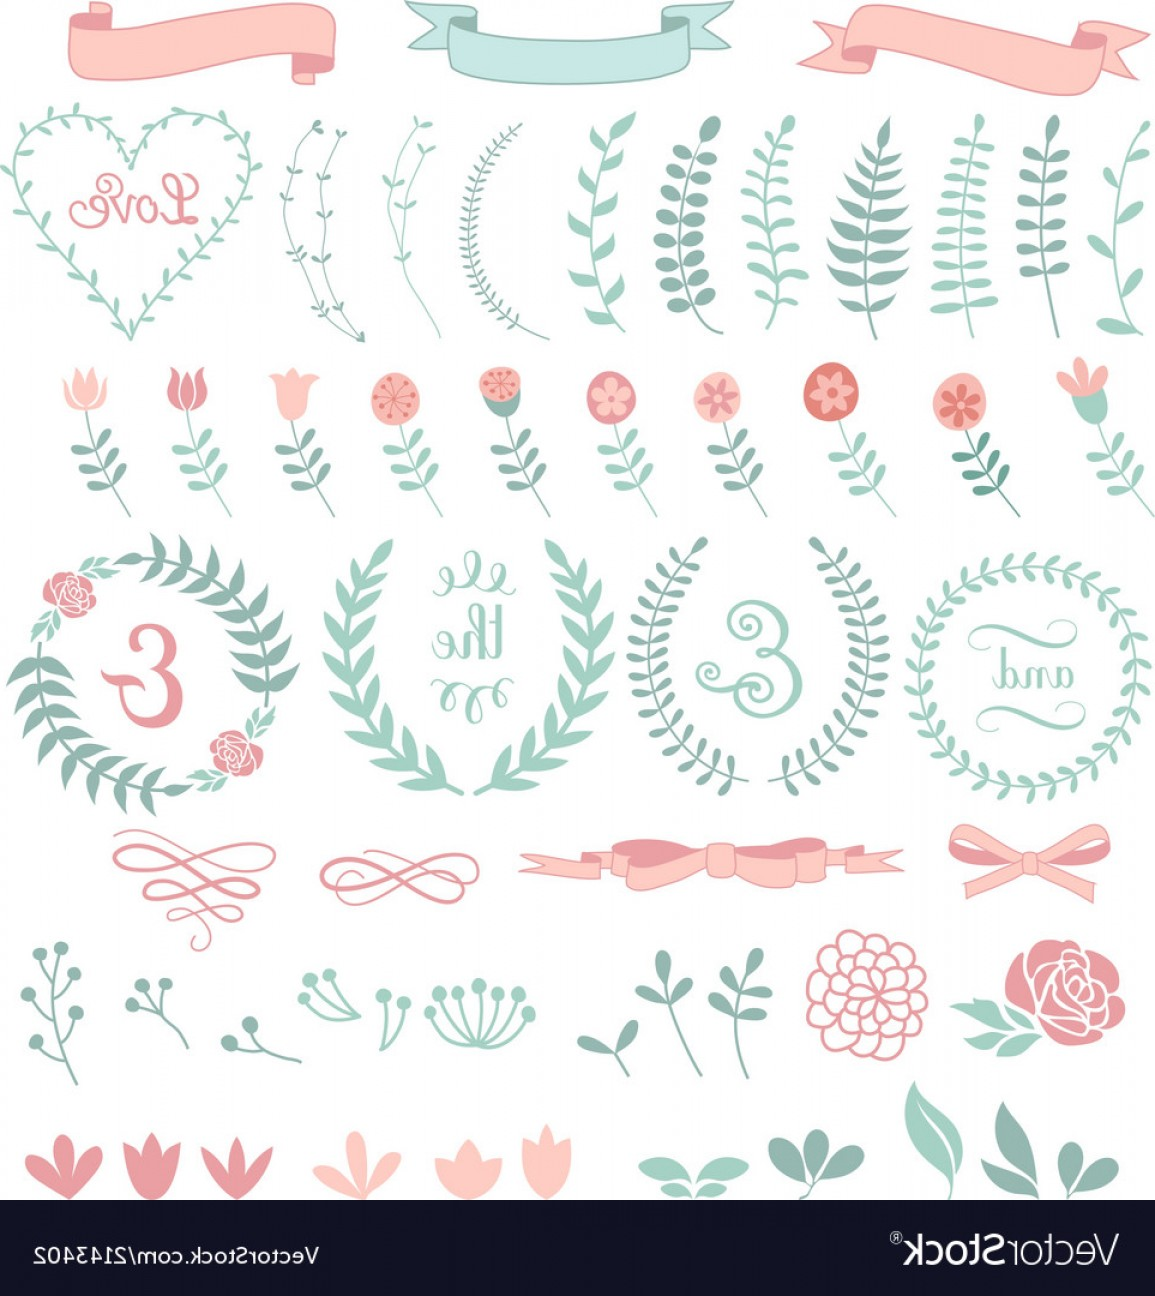 Floral Laurel Wreath Vector: Floral Laurel Wreath Set Vector